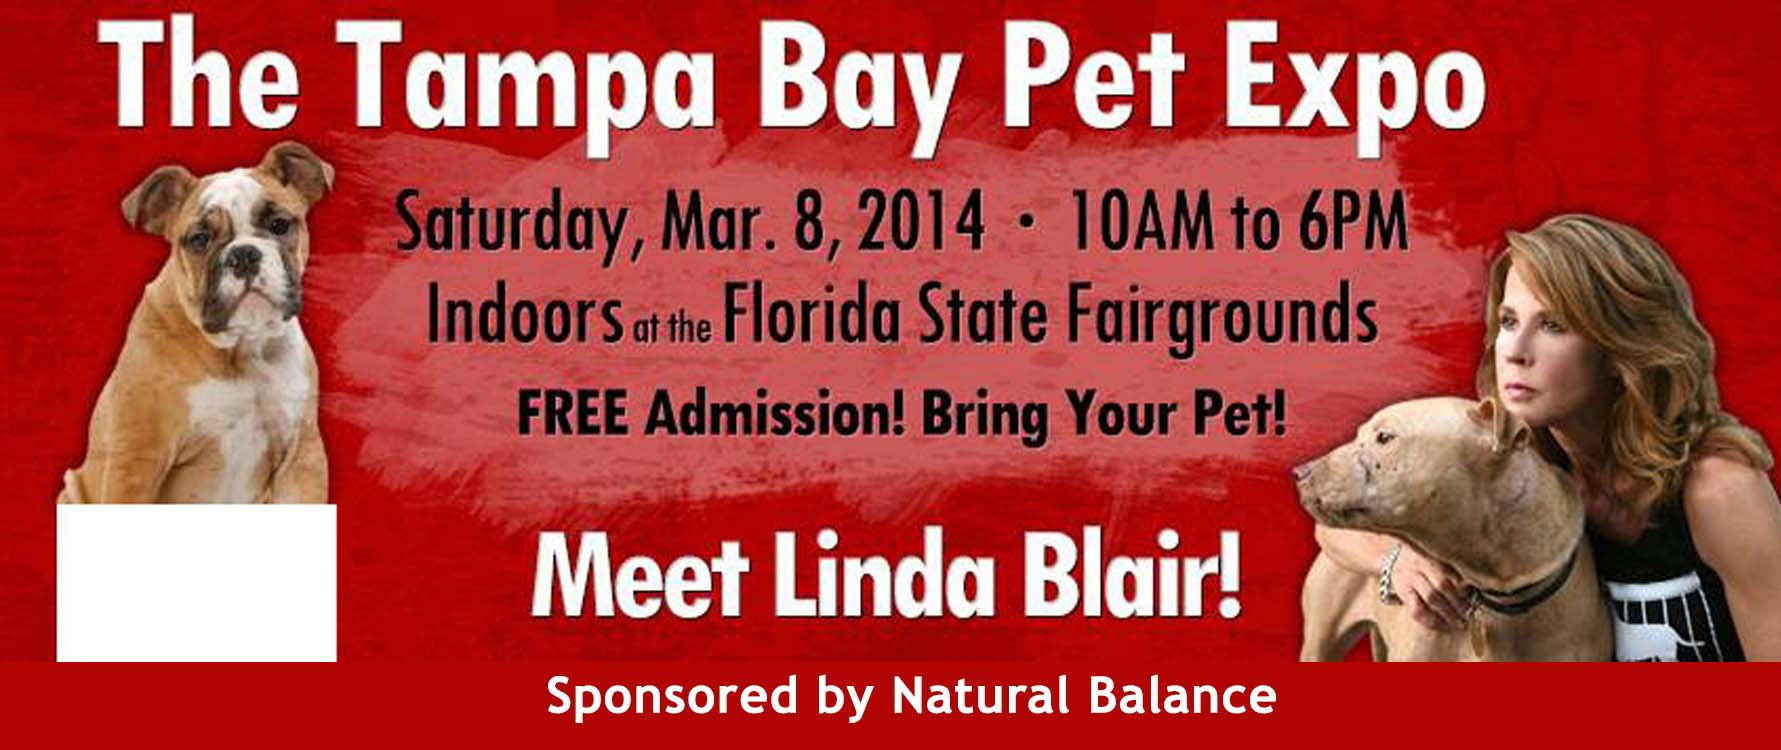 tampa pet expo red banner pic